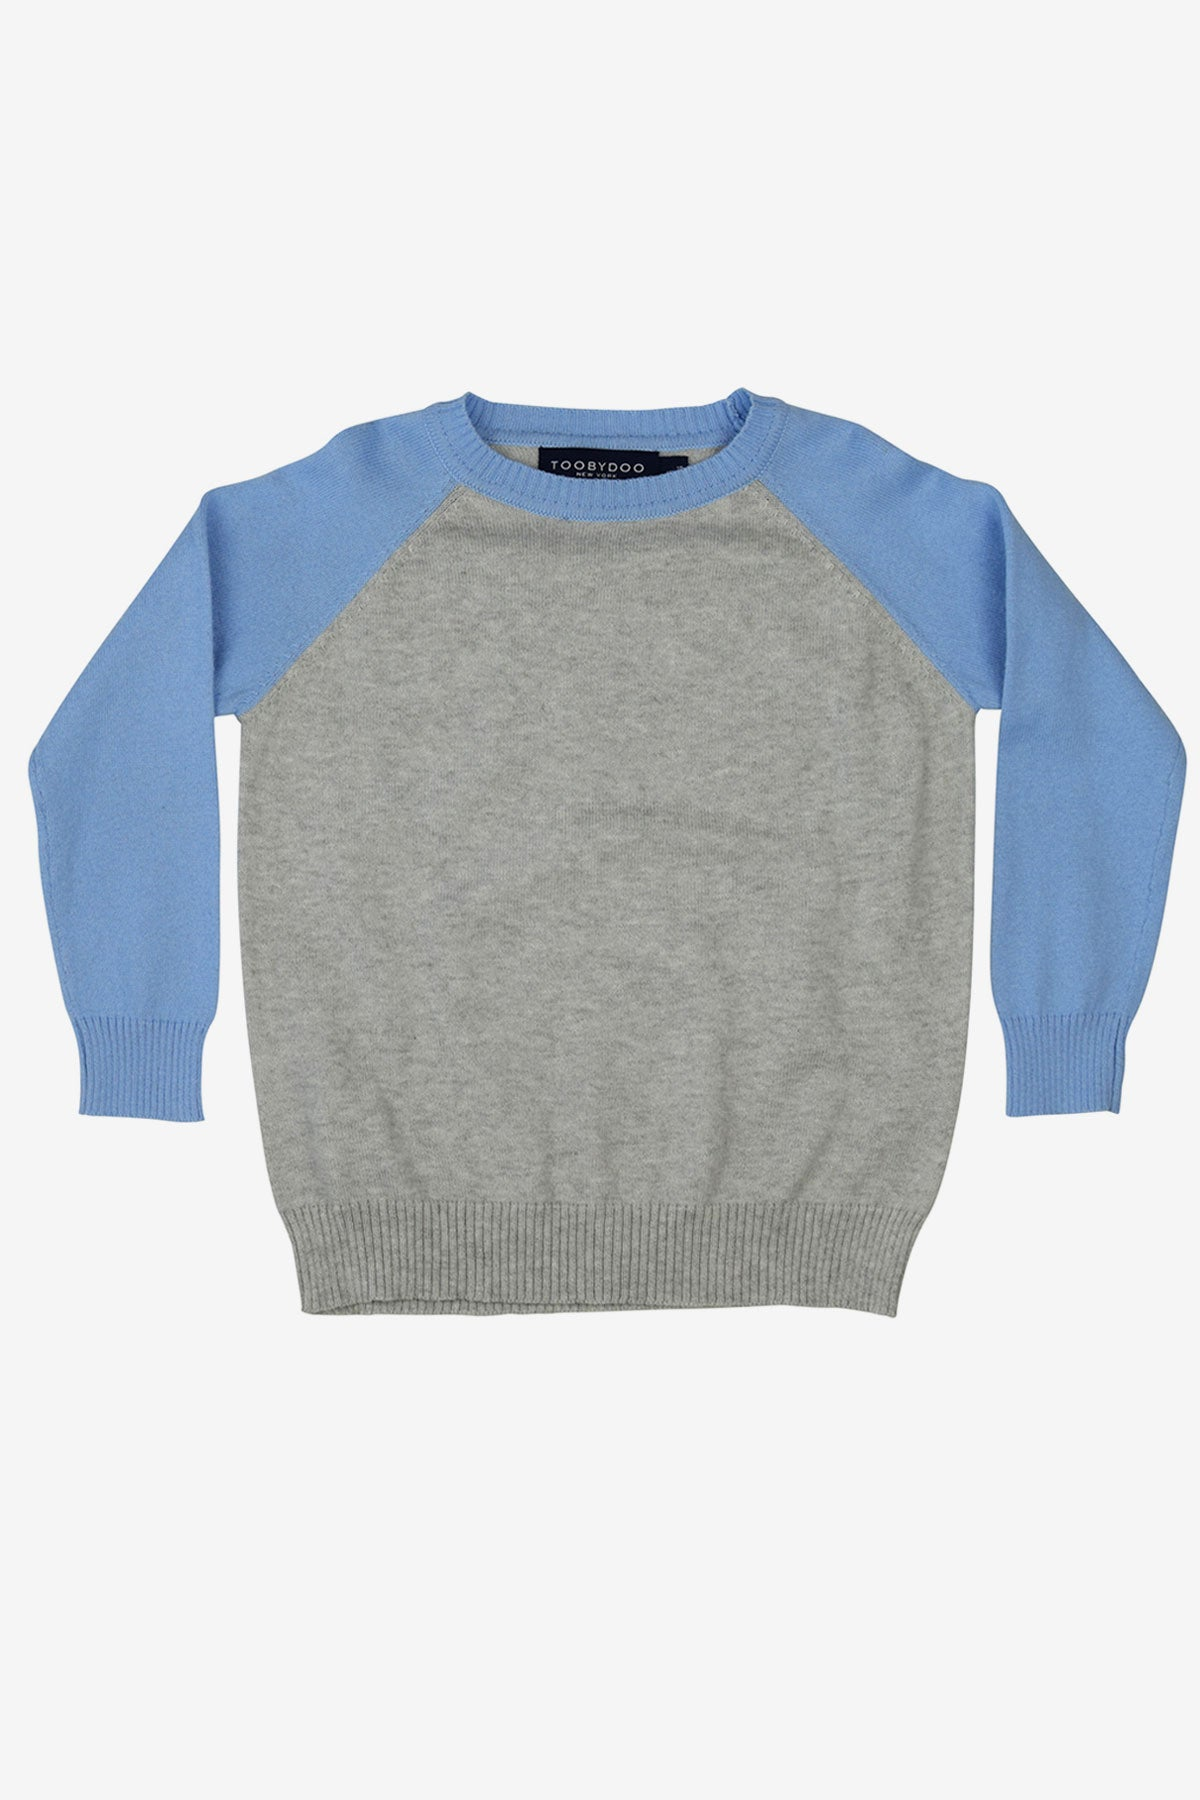 Toobydoo Boys Baseball Sweater - Grey/Light Blue